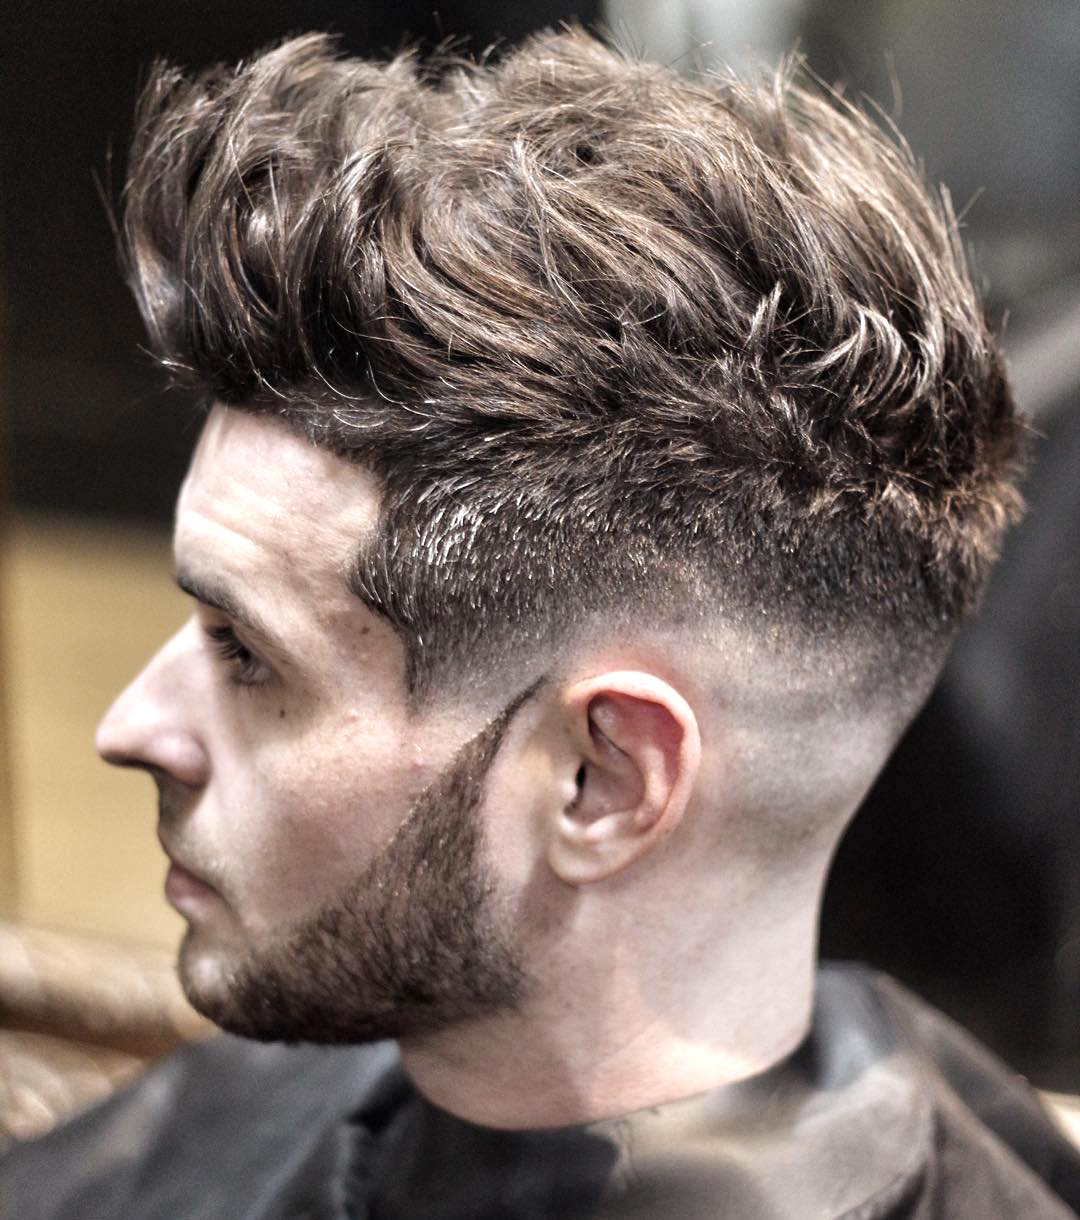 Textured Hairstyles For Men - image ryancullenhair_and-skin-fade-haircut-textured-hair-on-top-2017-new on https://alldesingideas.com